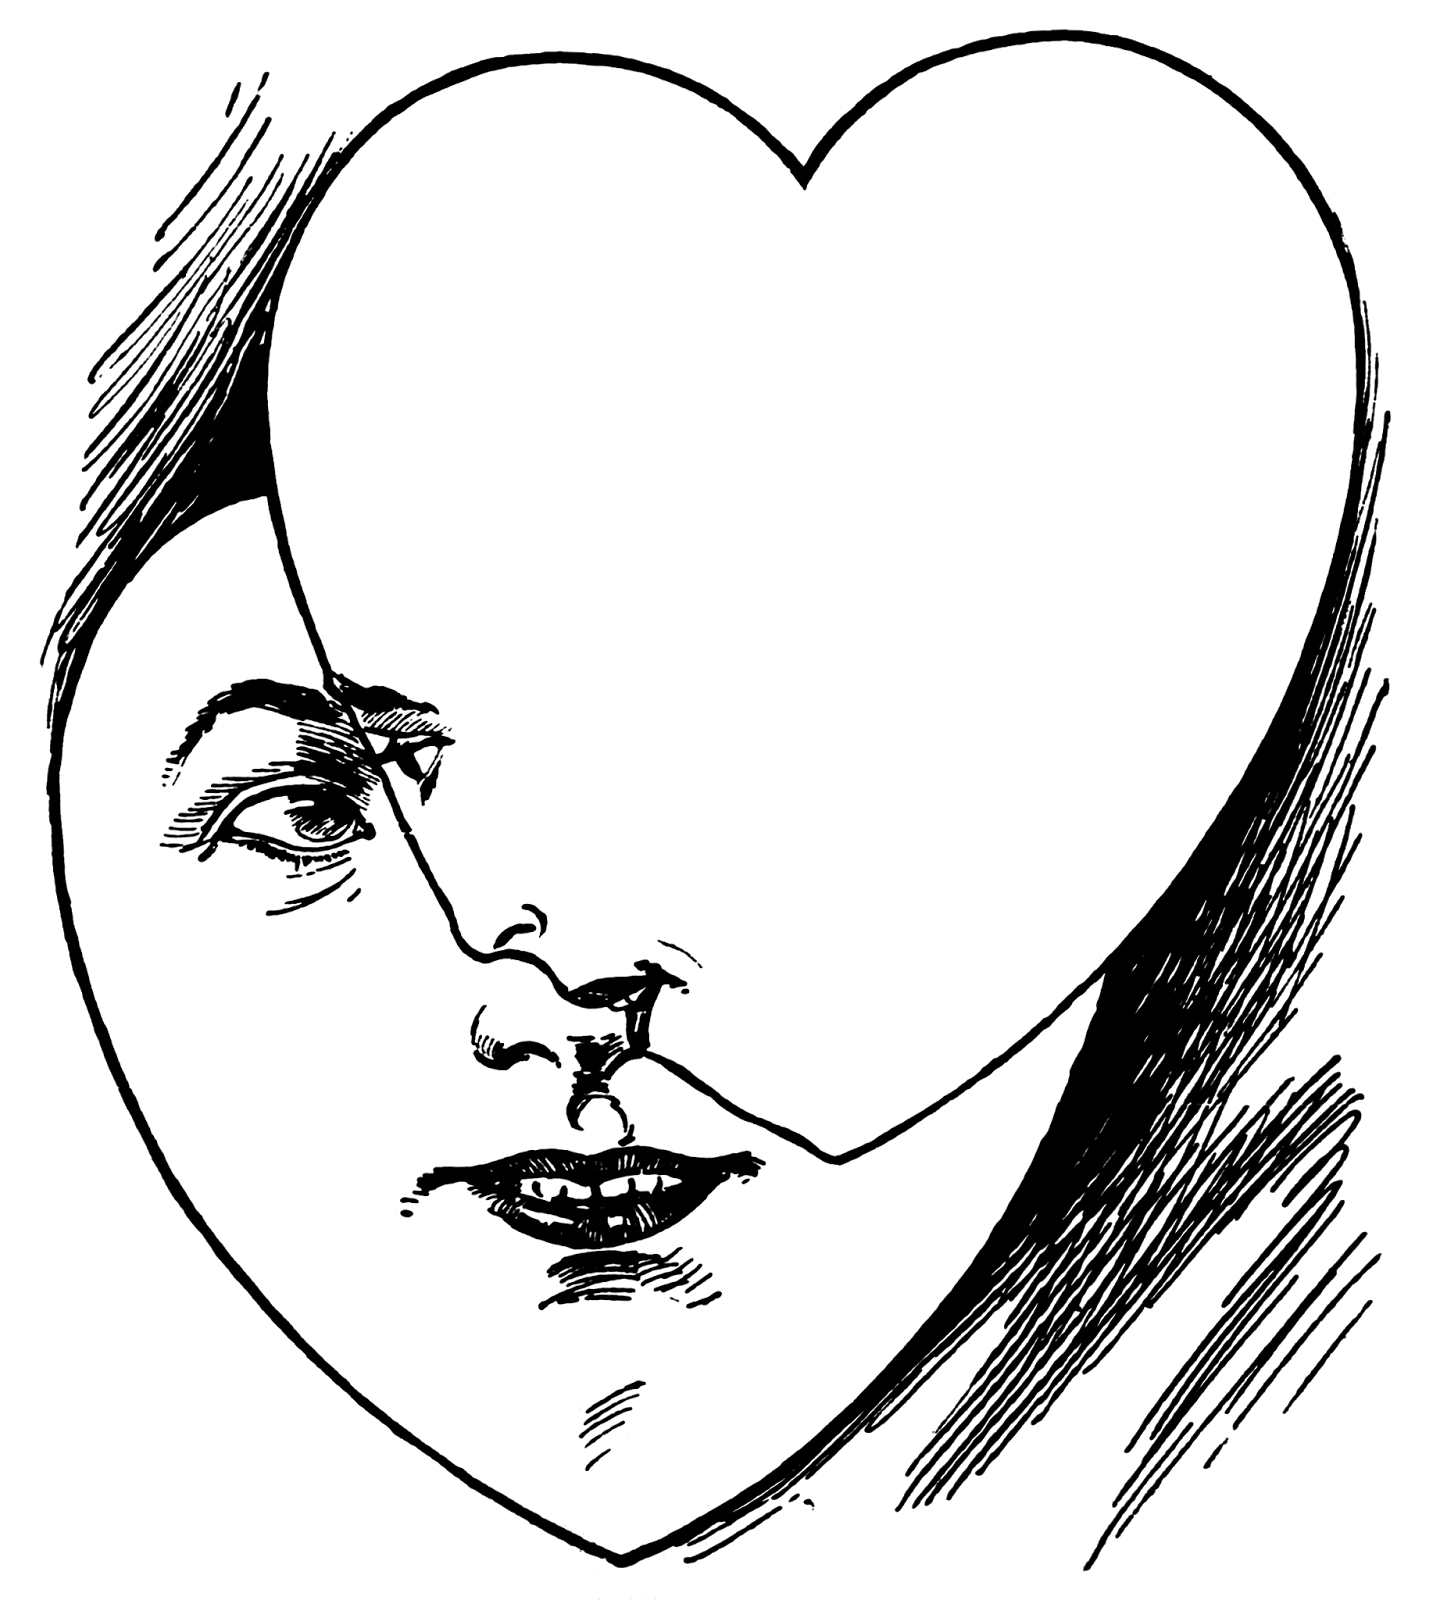 Old clipart black and white, Old black and white Transparent.